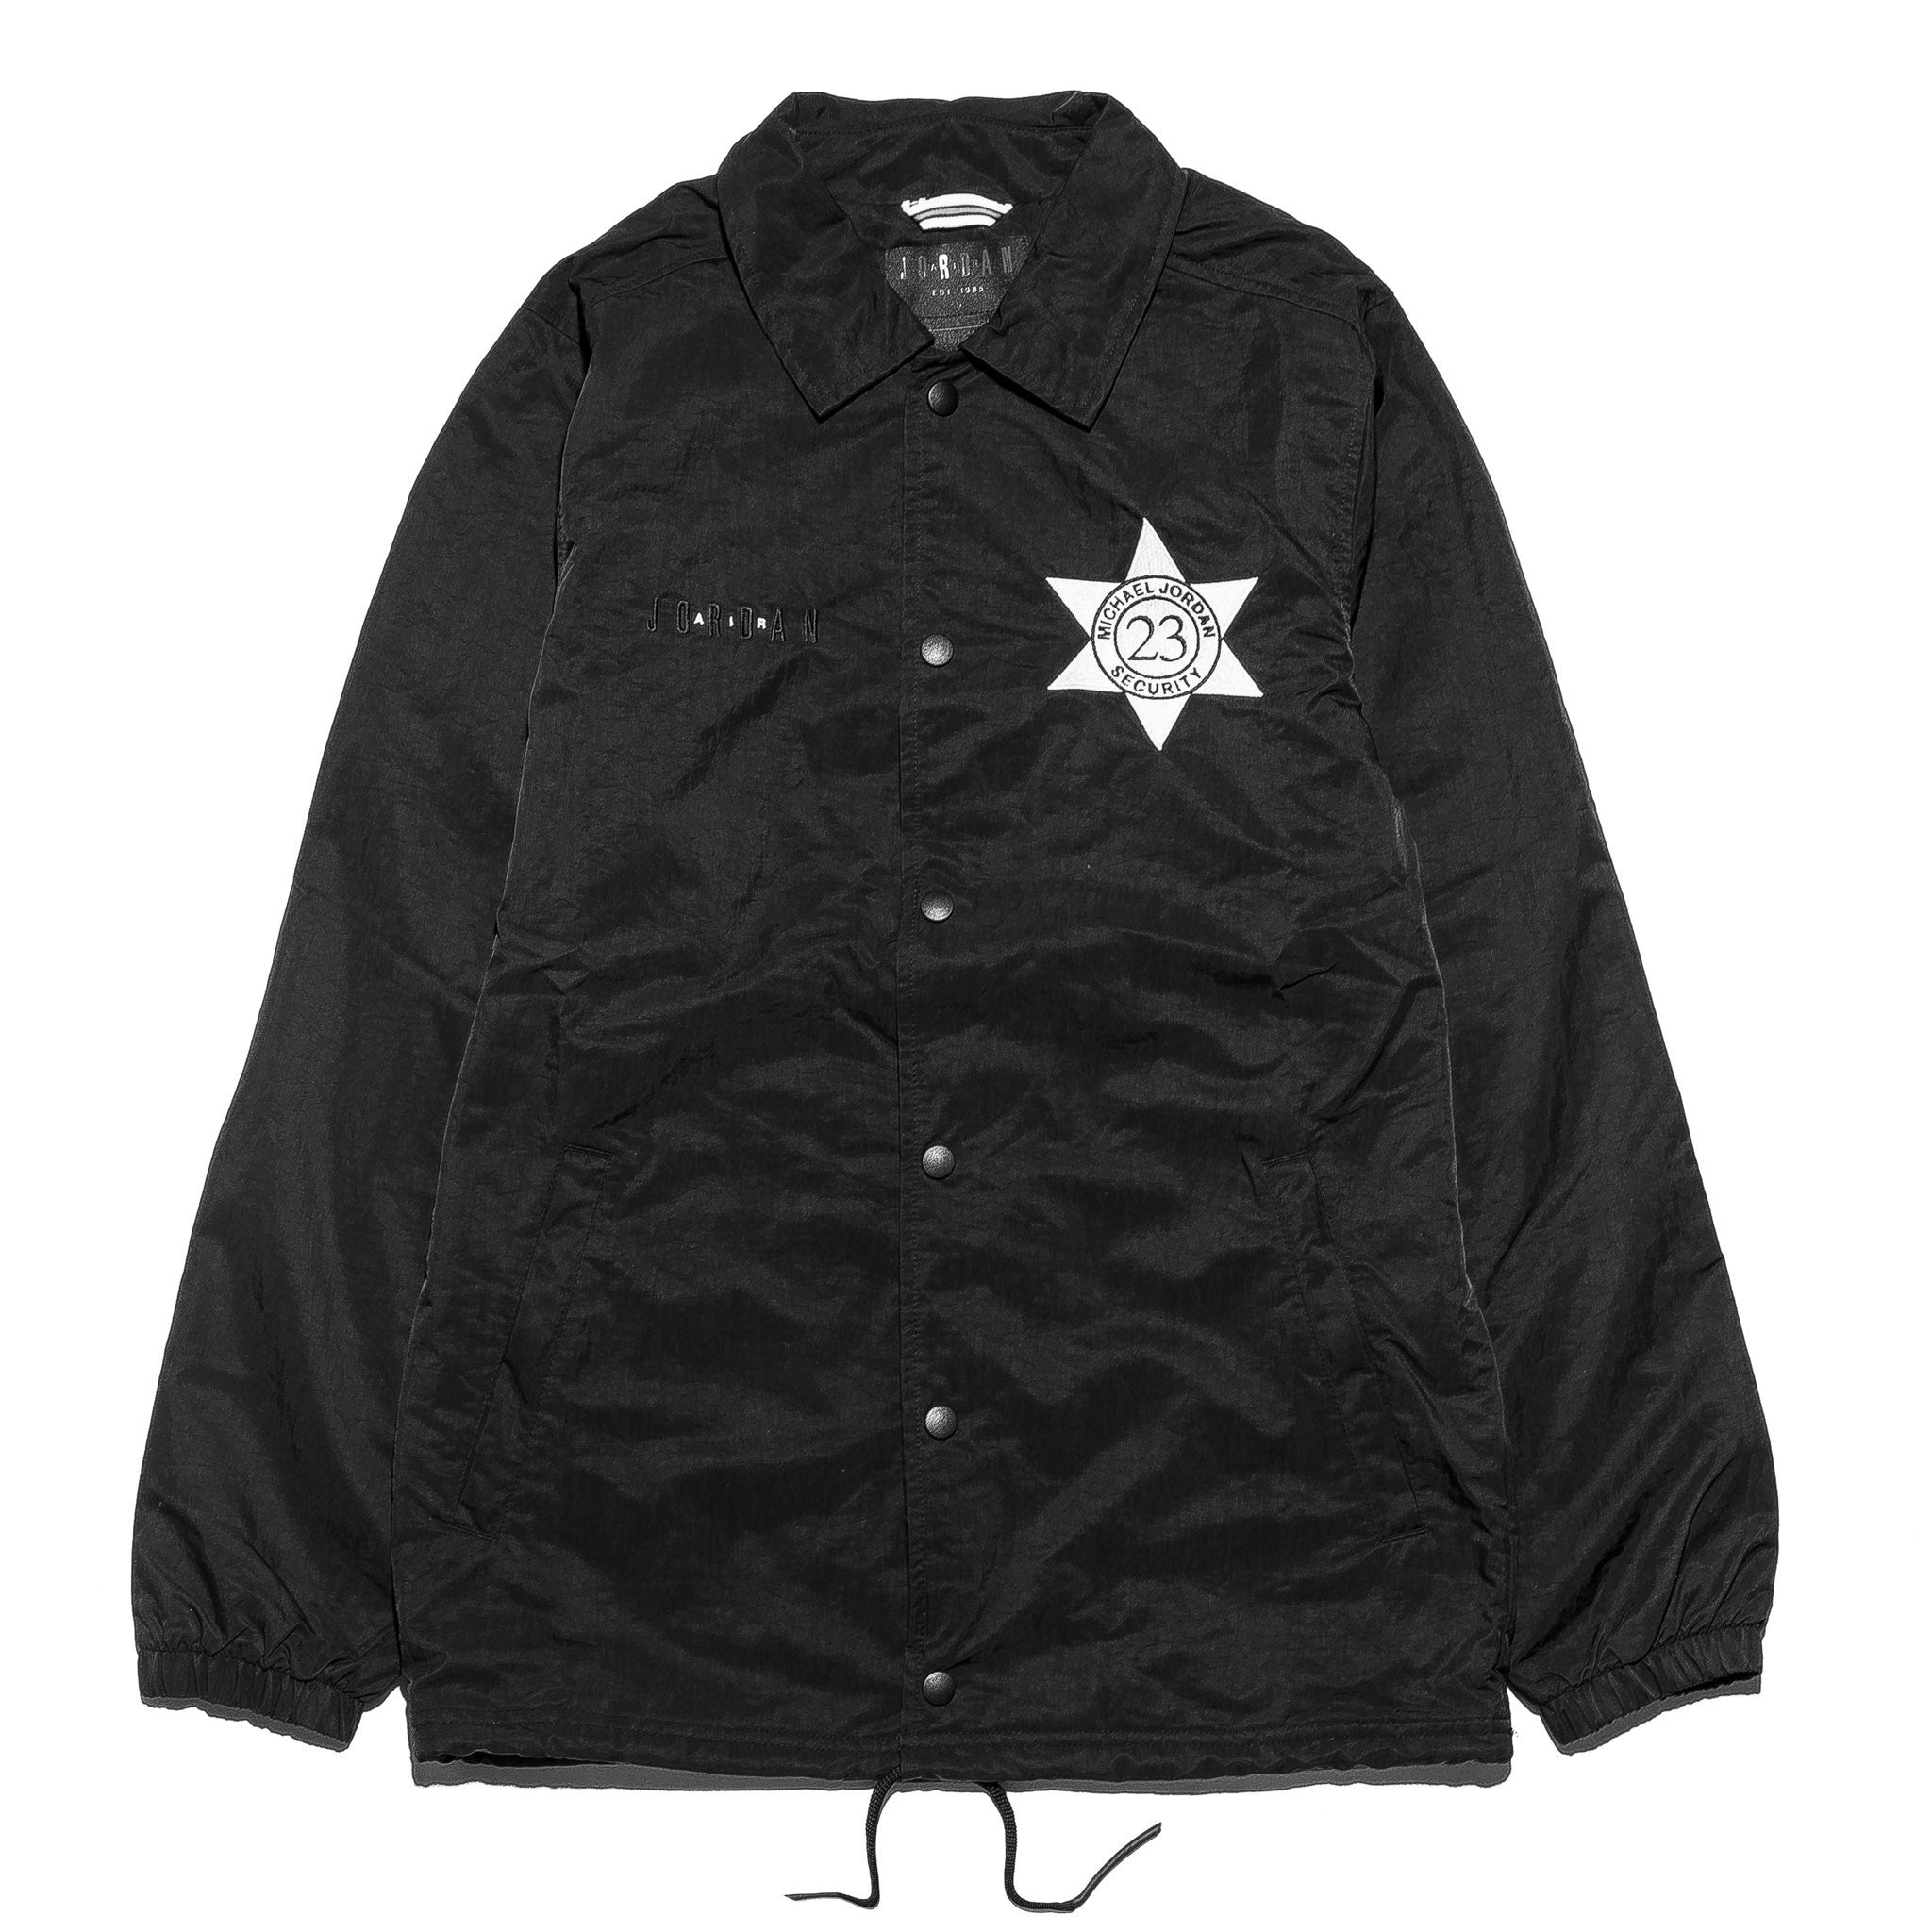 Jordan Pinnacle Security Jacket 835951-010 Black